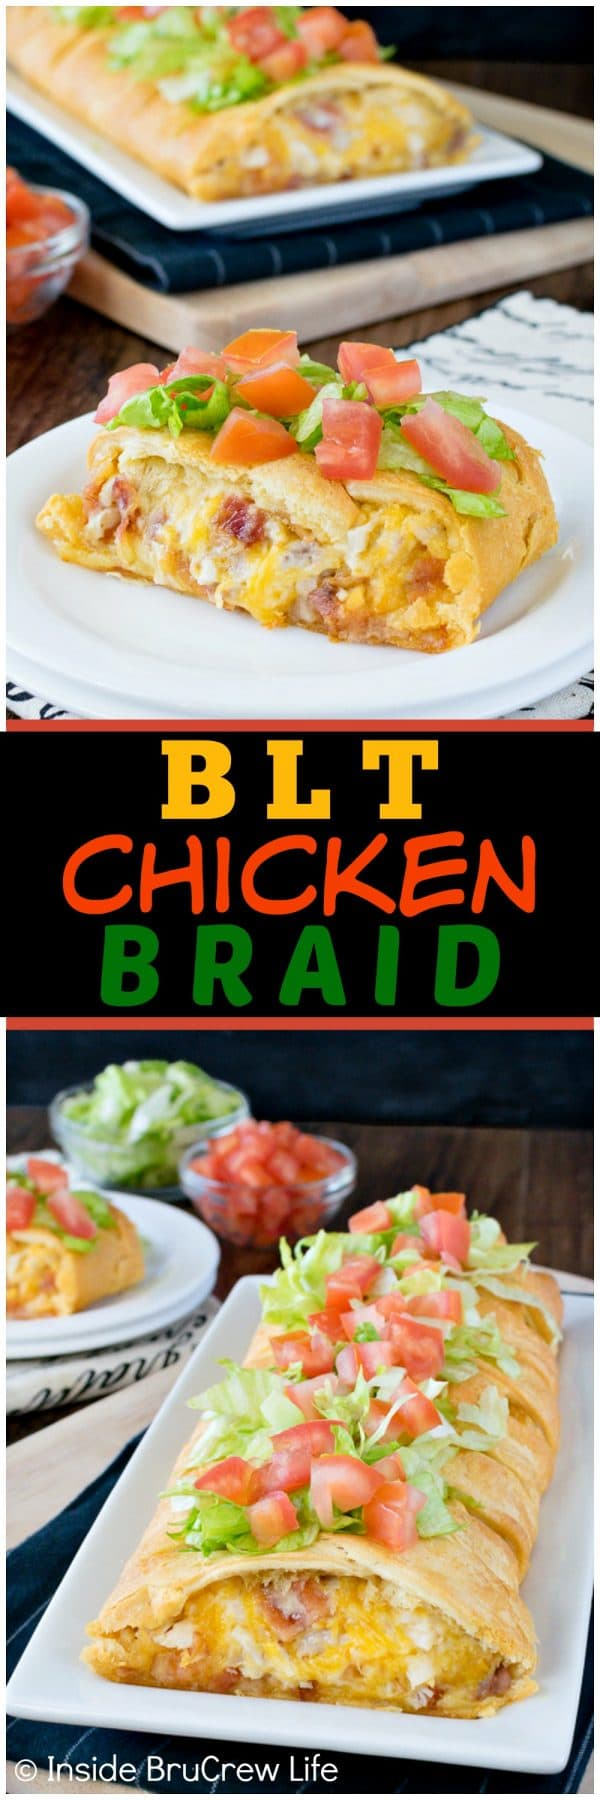 BLT Chicken Braid - bacon, cheese, and chicken inside crescent rolls is a delicious way to do dinner on a busy day. Add lettuce and tomatoes to make it just like the classic sandwich! #dinner #crescentrolls #blt #chicken #easydinner #gamedayfood